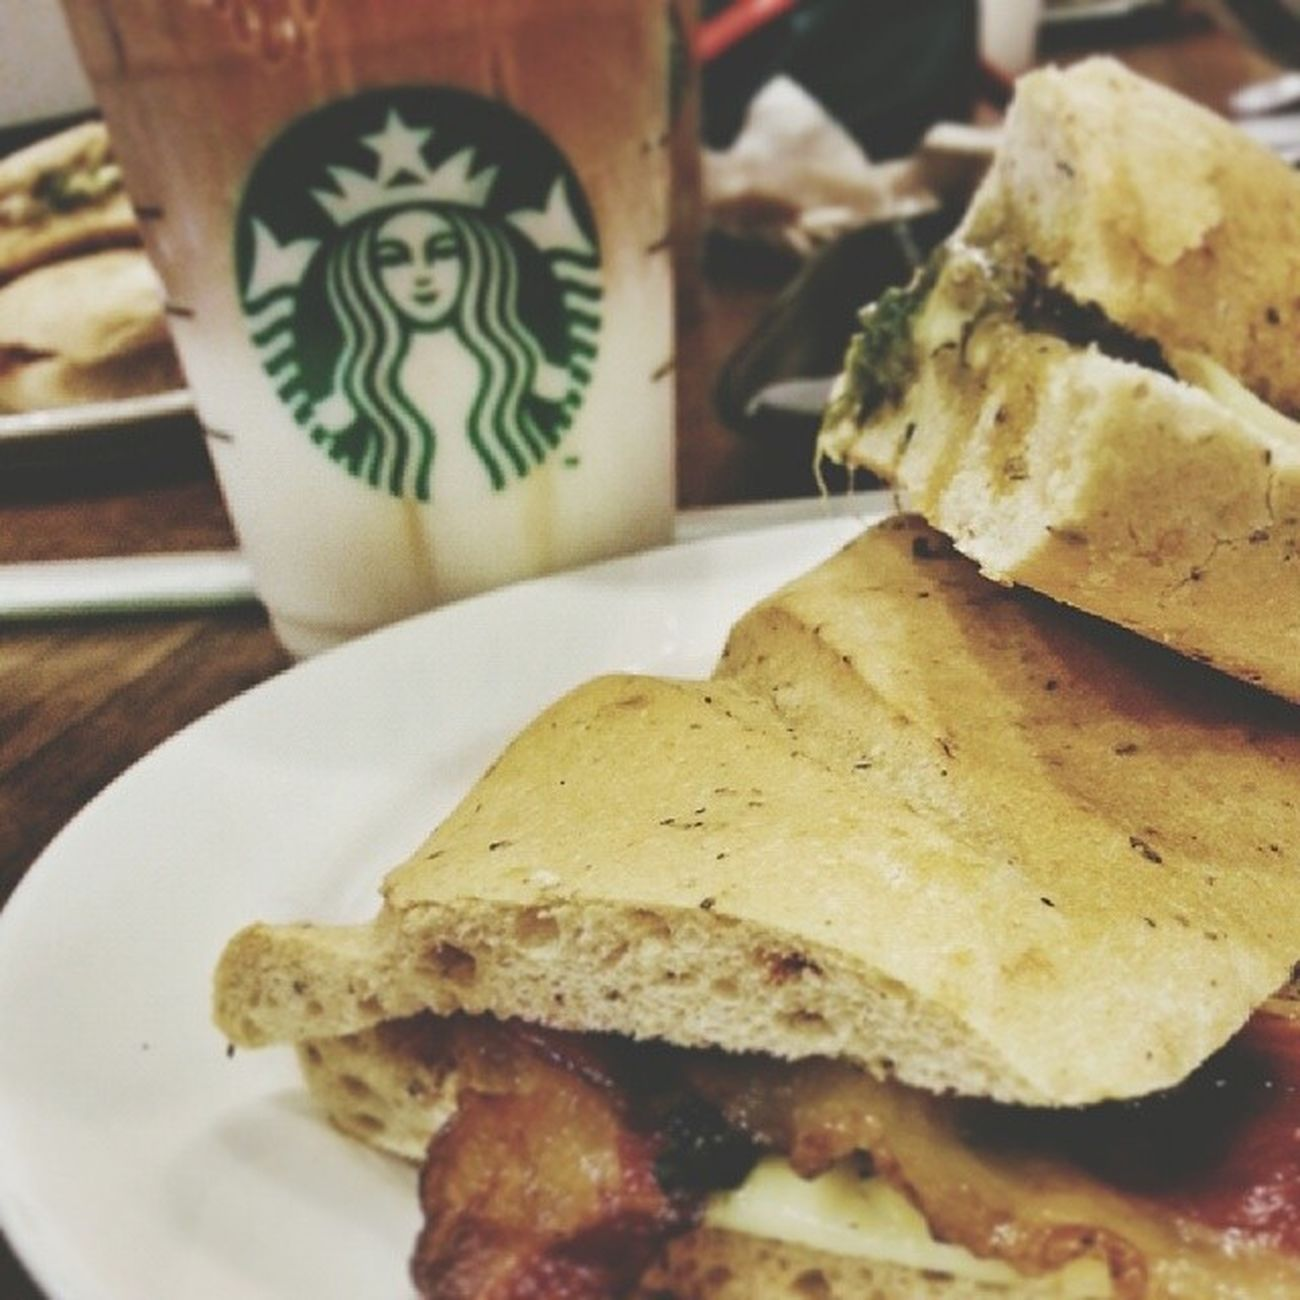 bacon and cheese ciabatta and caramel macchiato ♥ Starbucks Foodporn Hungergames Instabilbil